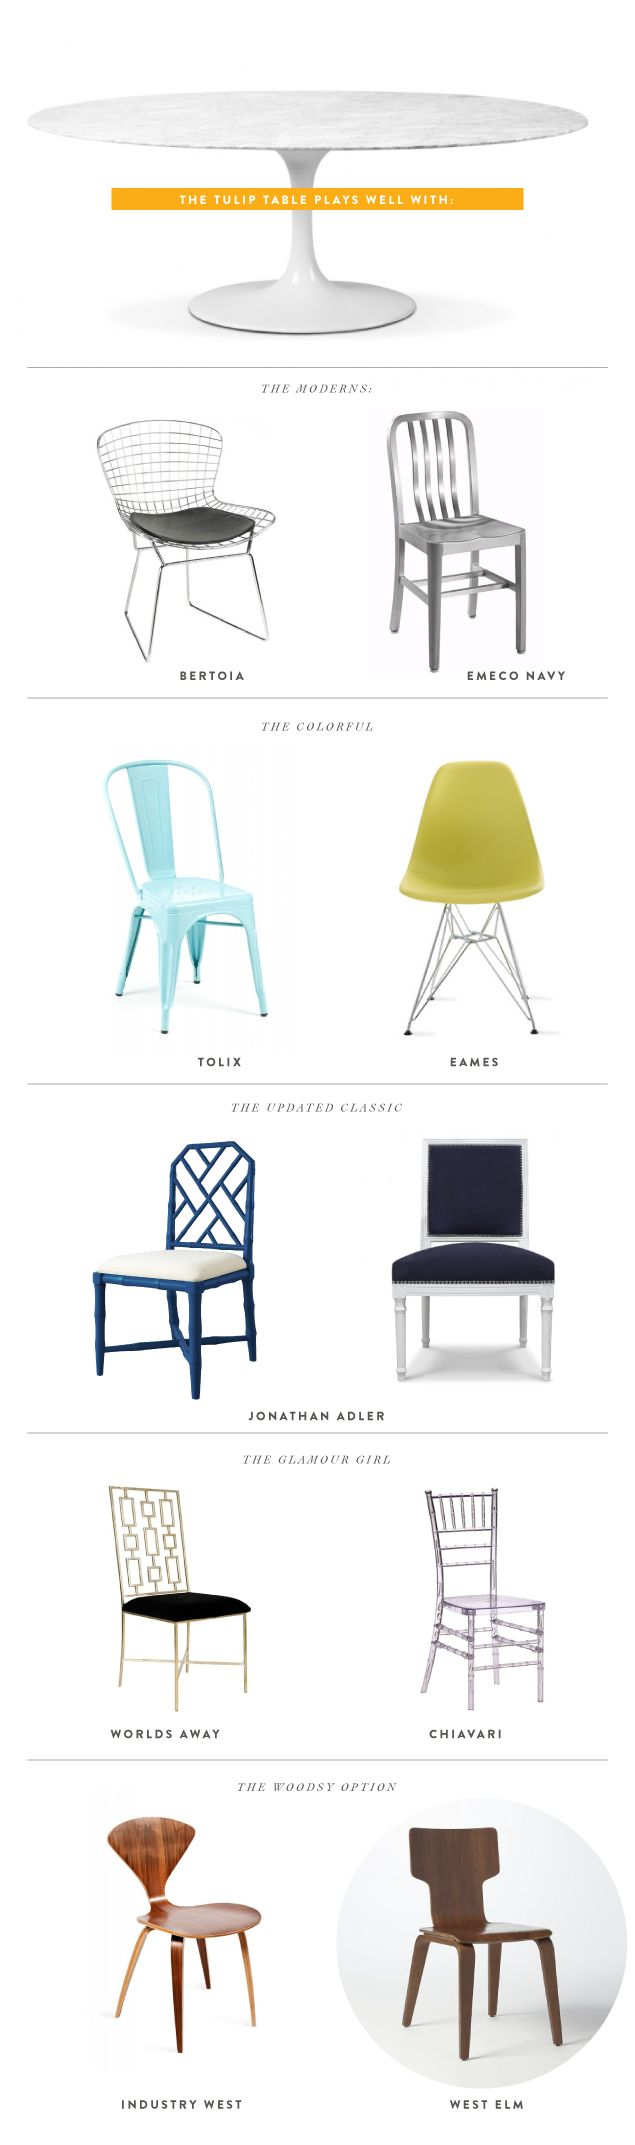 A roundup of chairs to pair with the classic Saarinen tulip table - www.pencilshavingsstudio.com